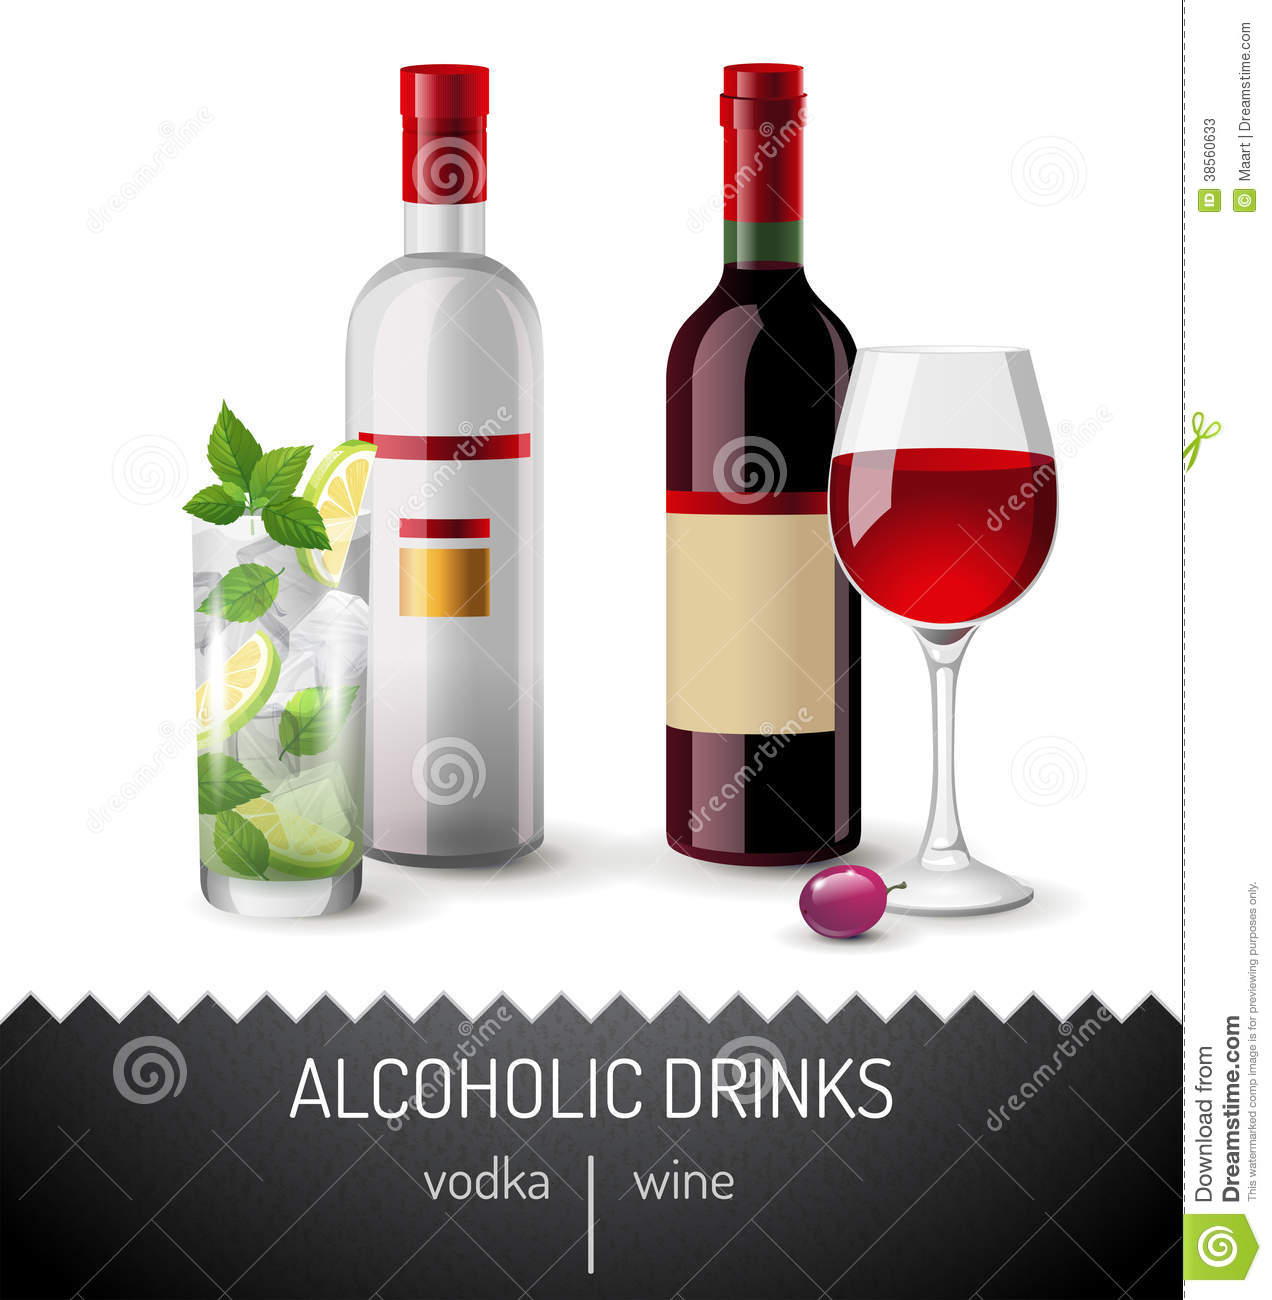 Alcoholic drinks stock photos image 38560633 for Mix drinks with wine